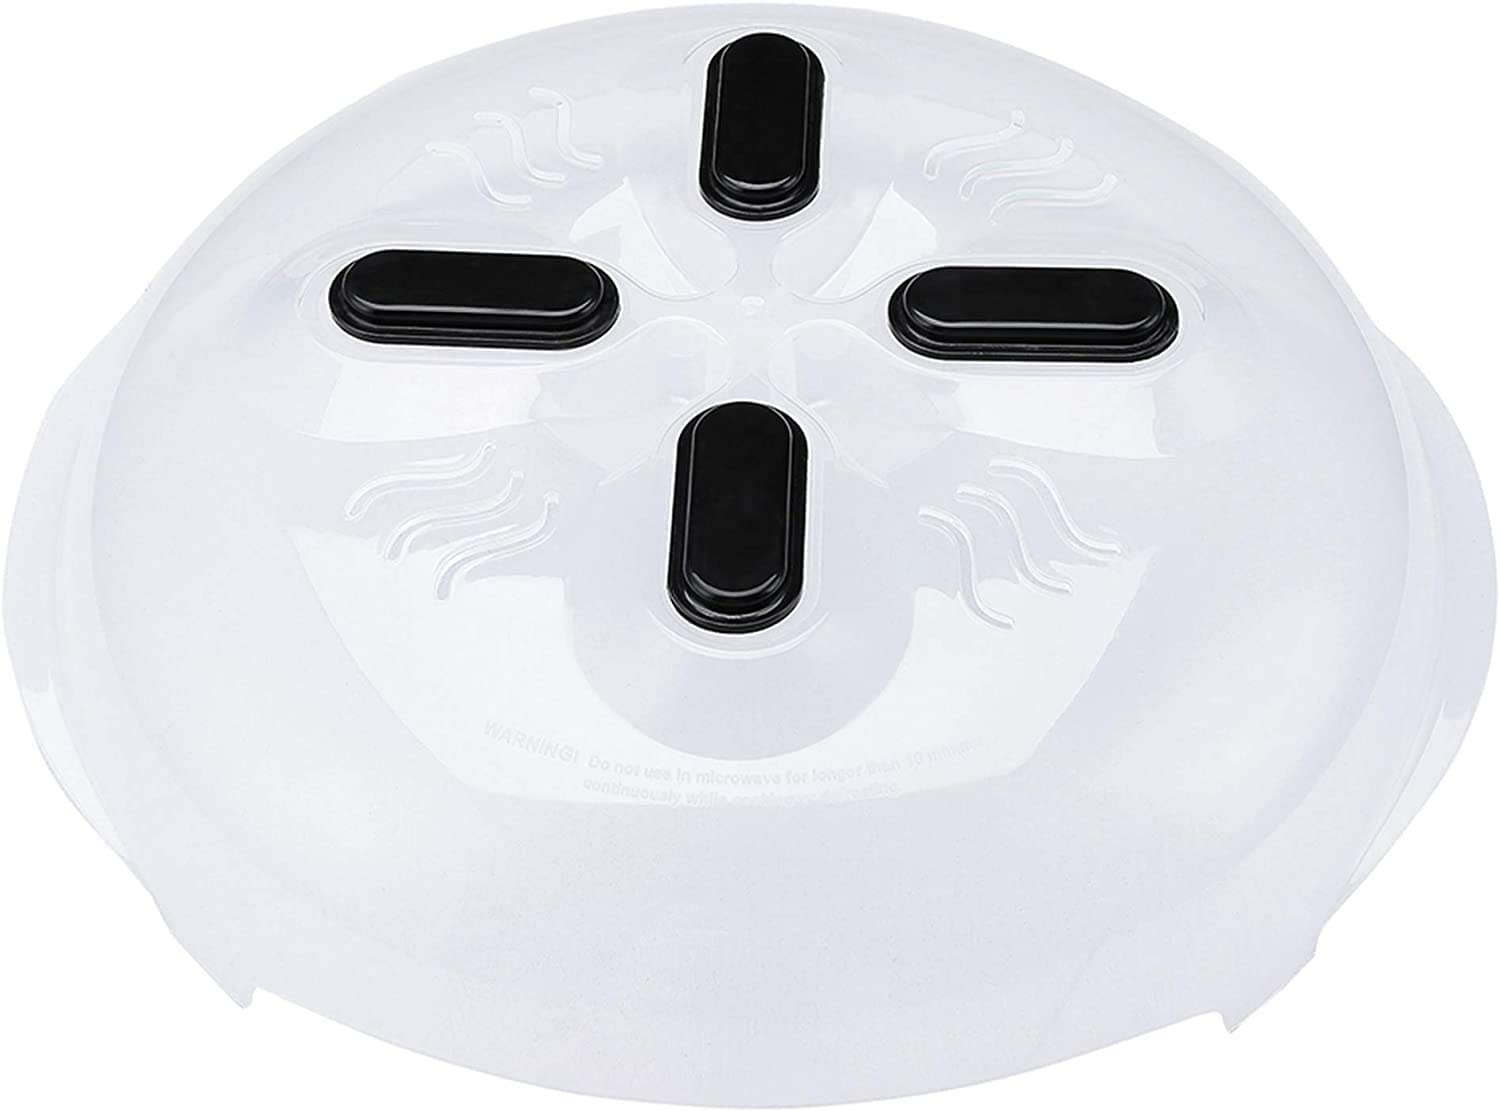 Magnetic Microwave Splatter Cover, Microwave Cover Hover Splatter Guard Lid with Steam Vent Adsorbed Function, BPA-FREE